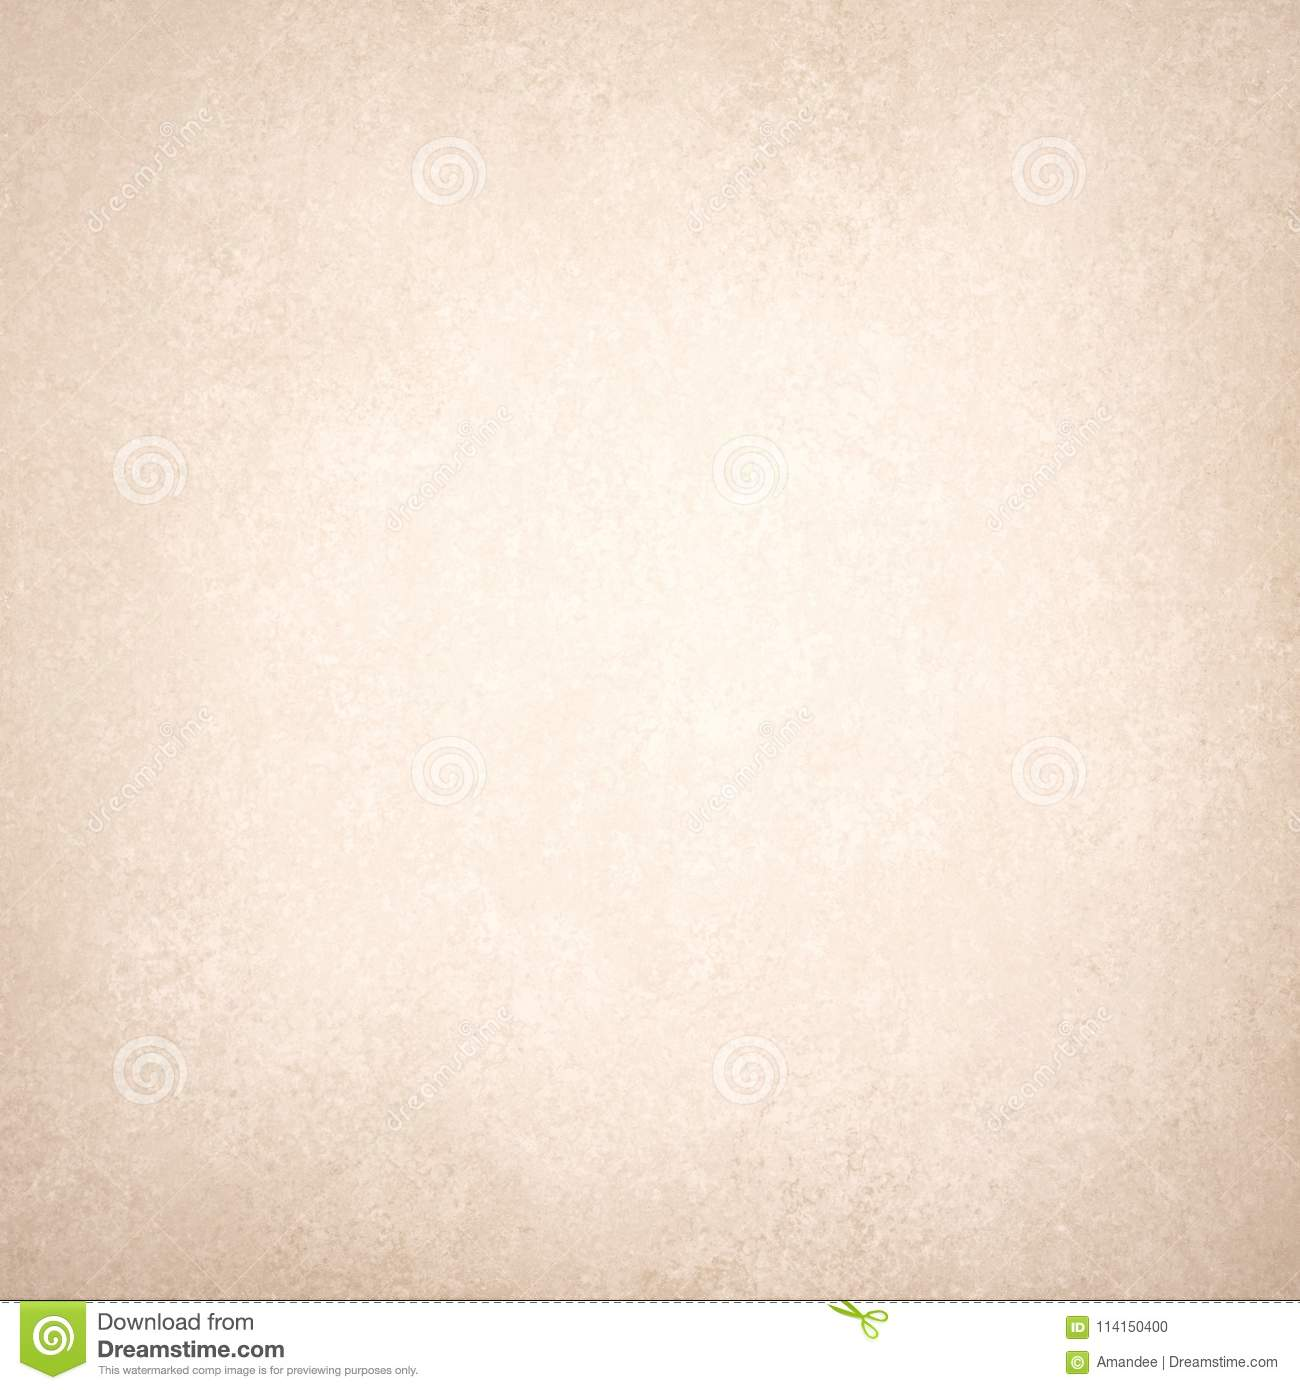 Old Textured White Paper With Brown Border Vintage